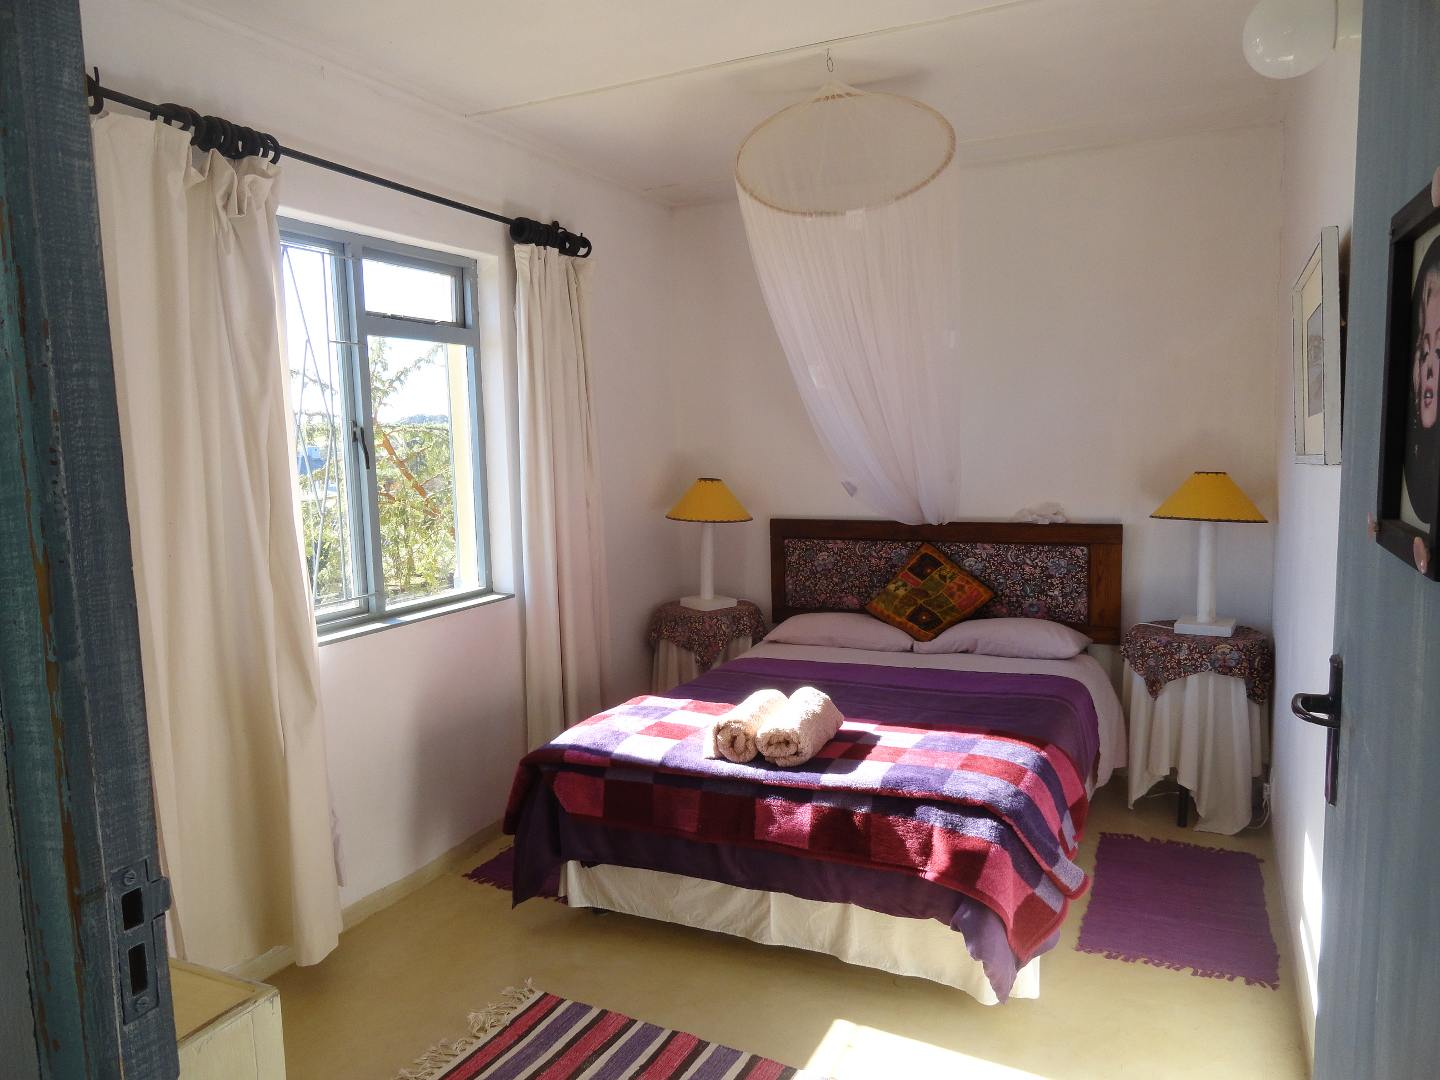 Pictures Of Gumtree Cottage